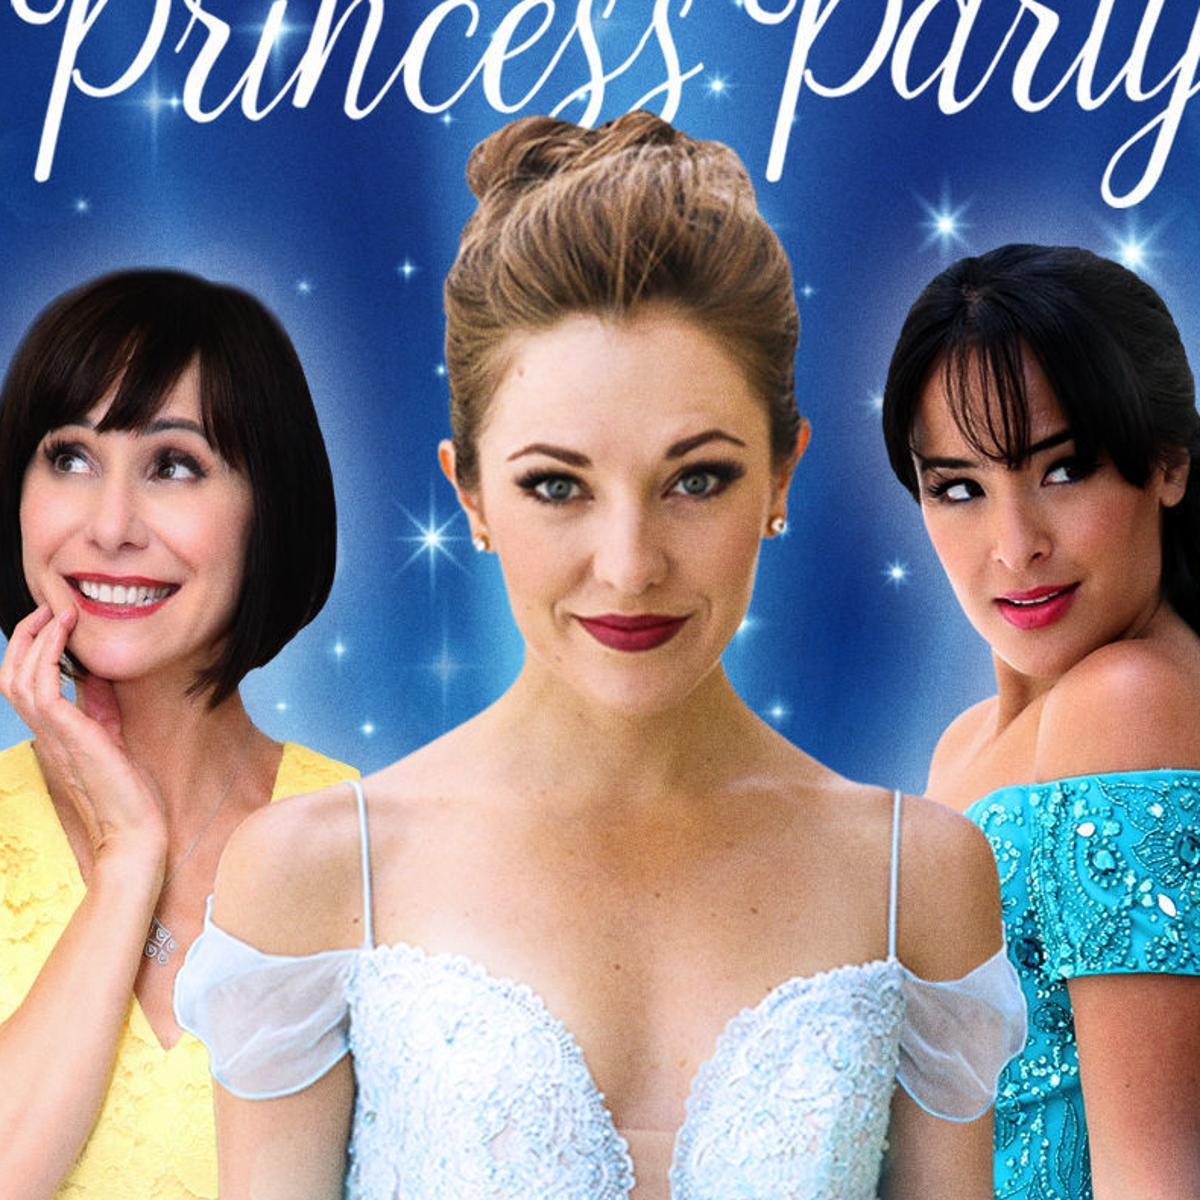 Lincoln gets the royal treatment with Broadway Princess Party Jan